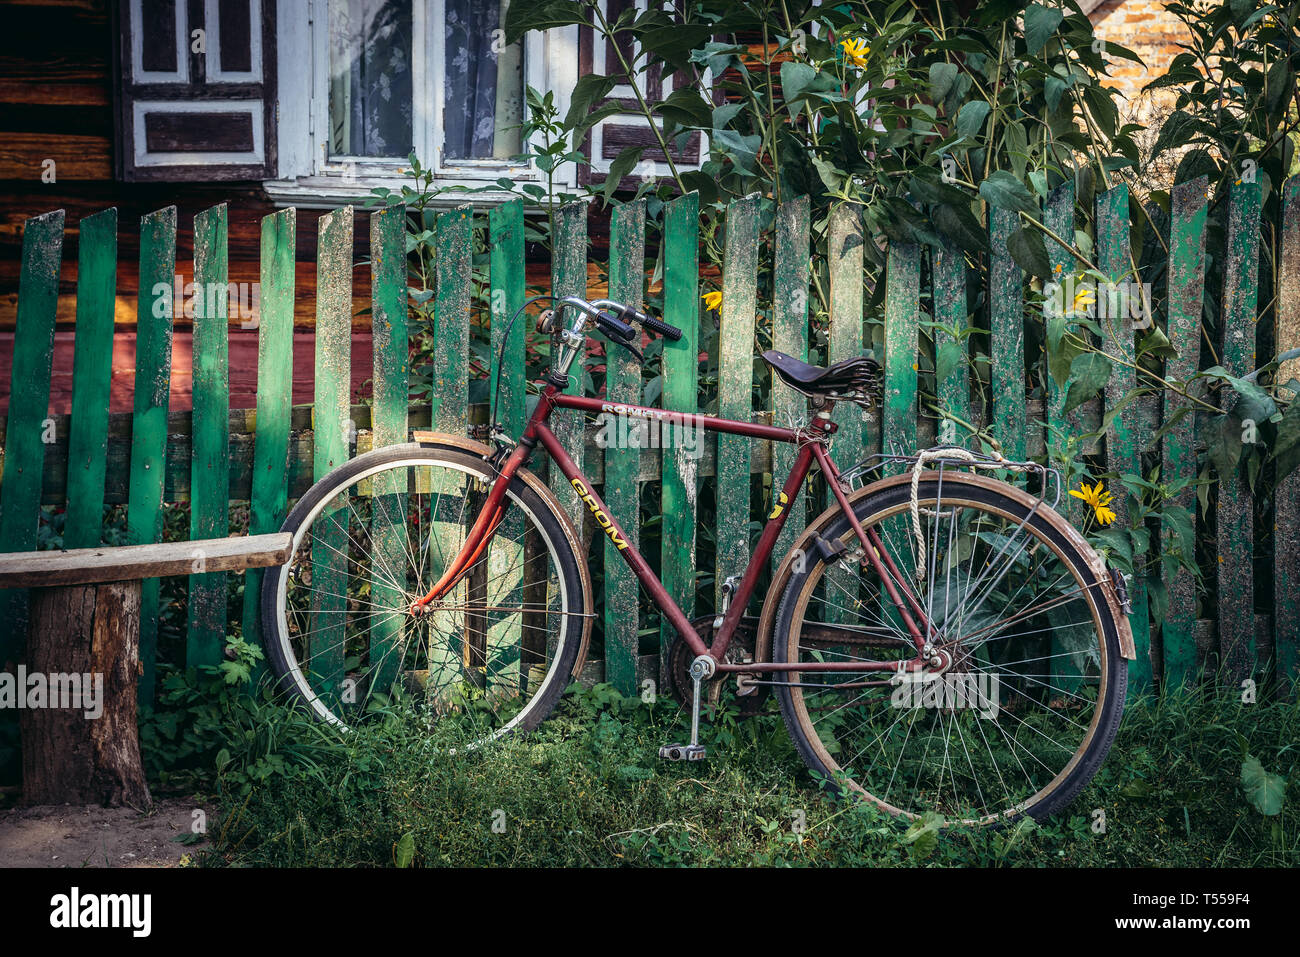 Bicycle in Soce village on so called The Land of Open Shutters trail, famous for traditional architecture in Podlaskie Voivodeship, Poland - Stock Image